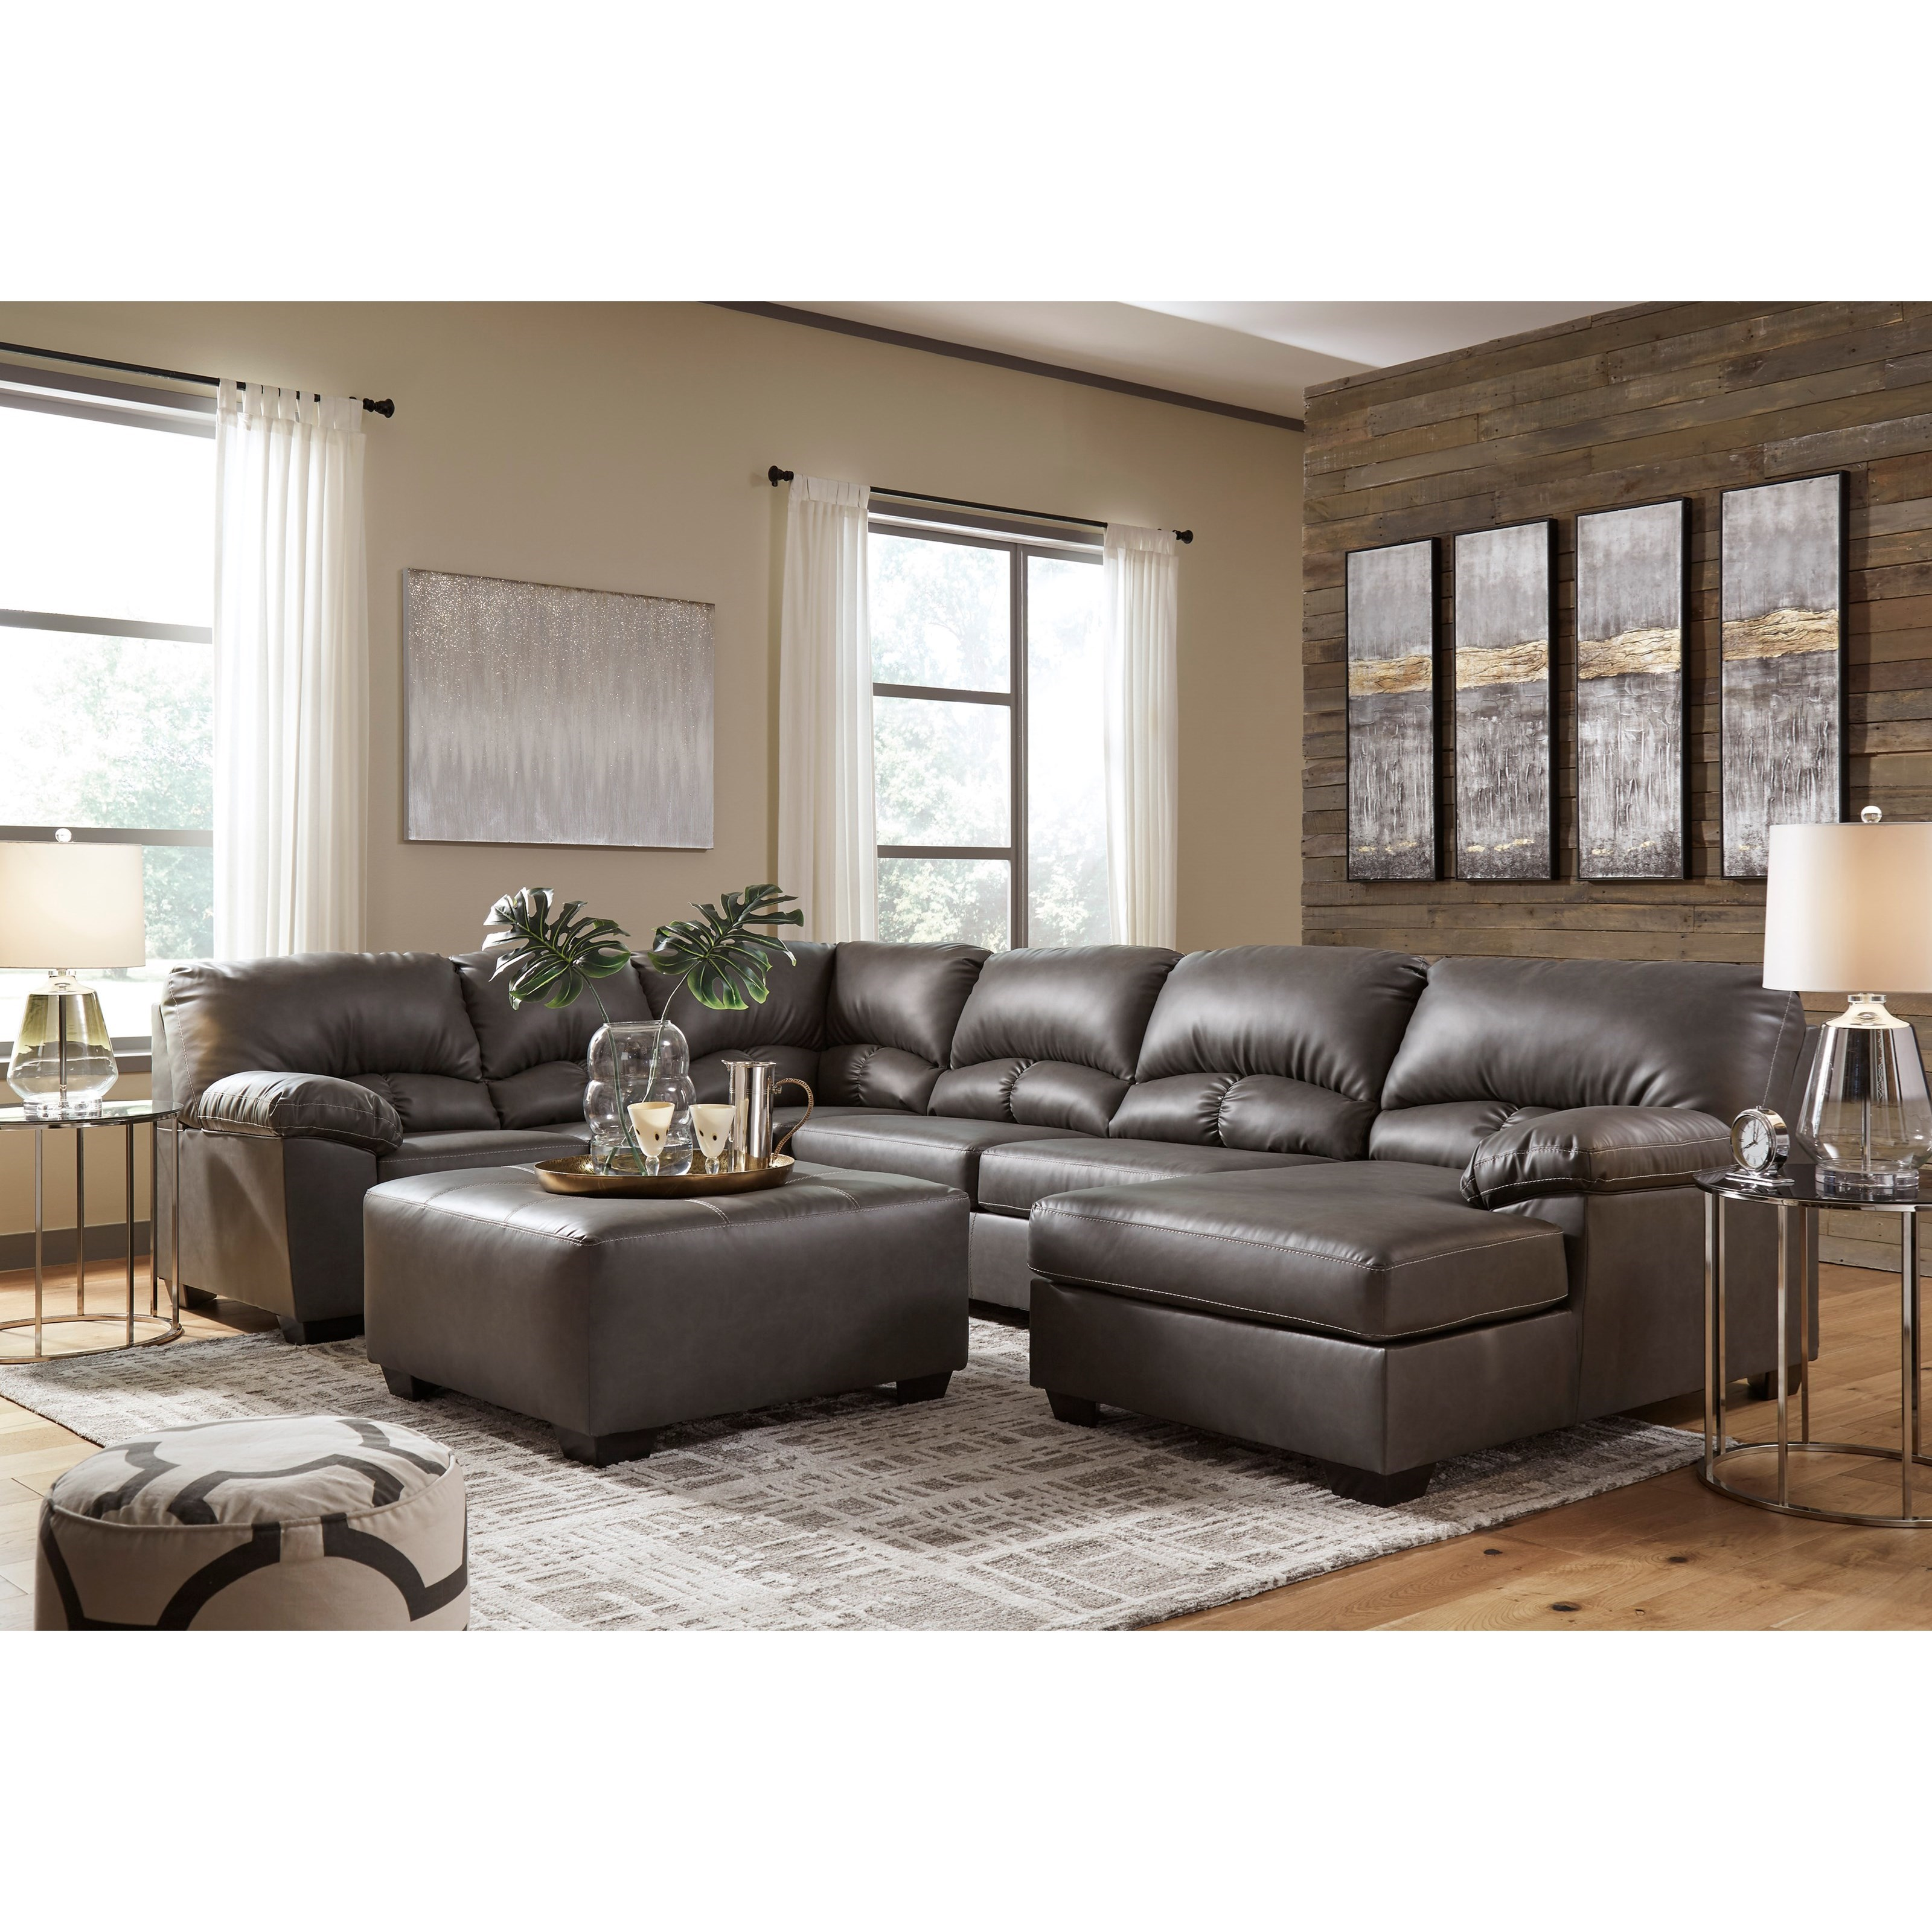 Aberton Living Room Group by Benchcraft at Value City Furniture